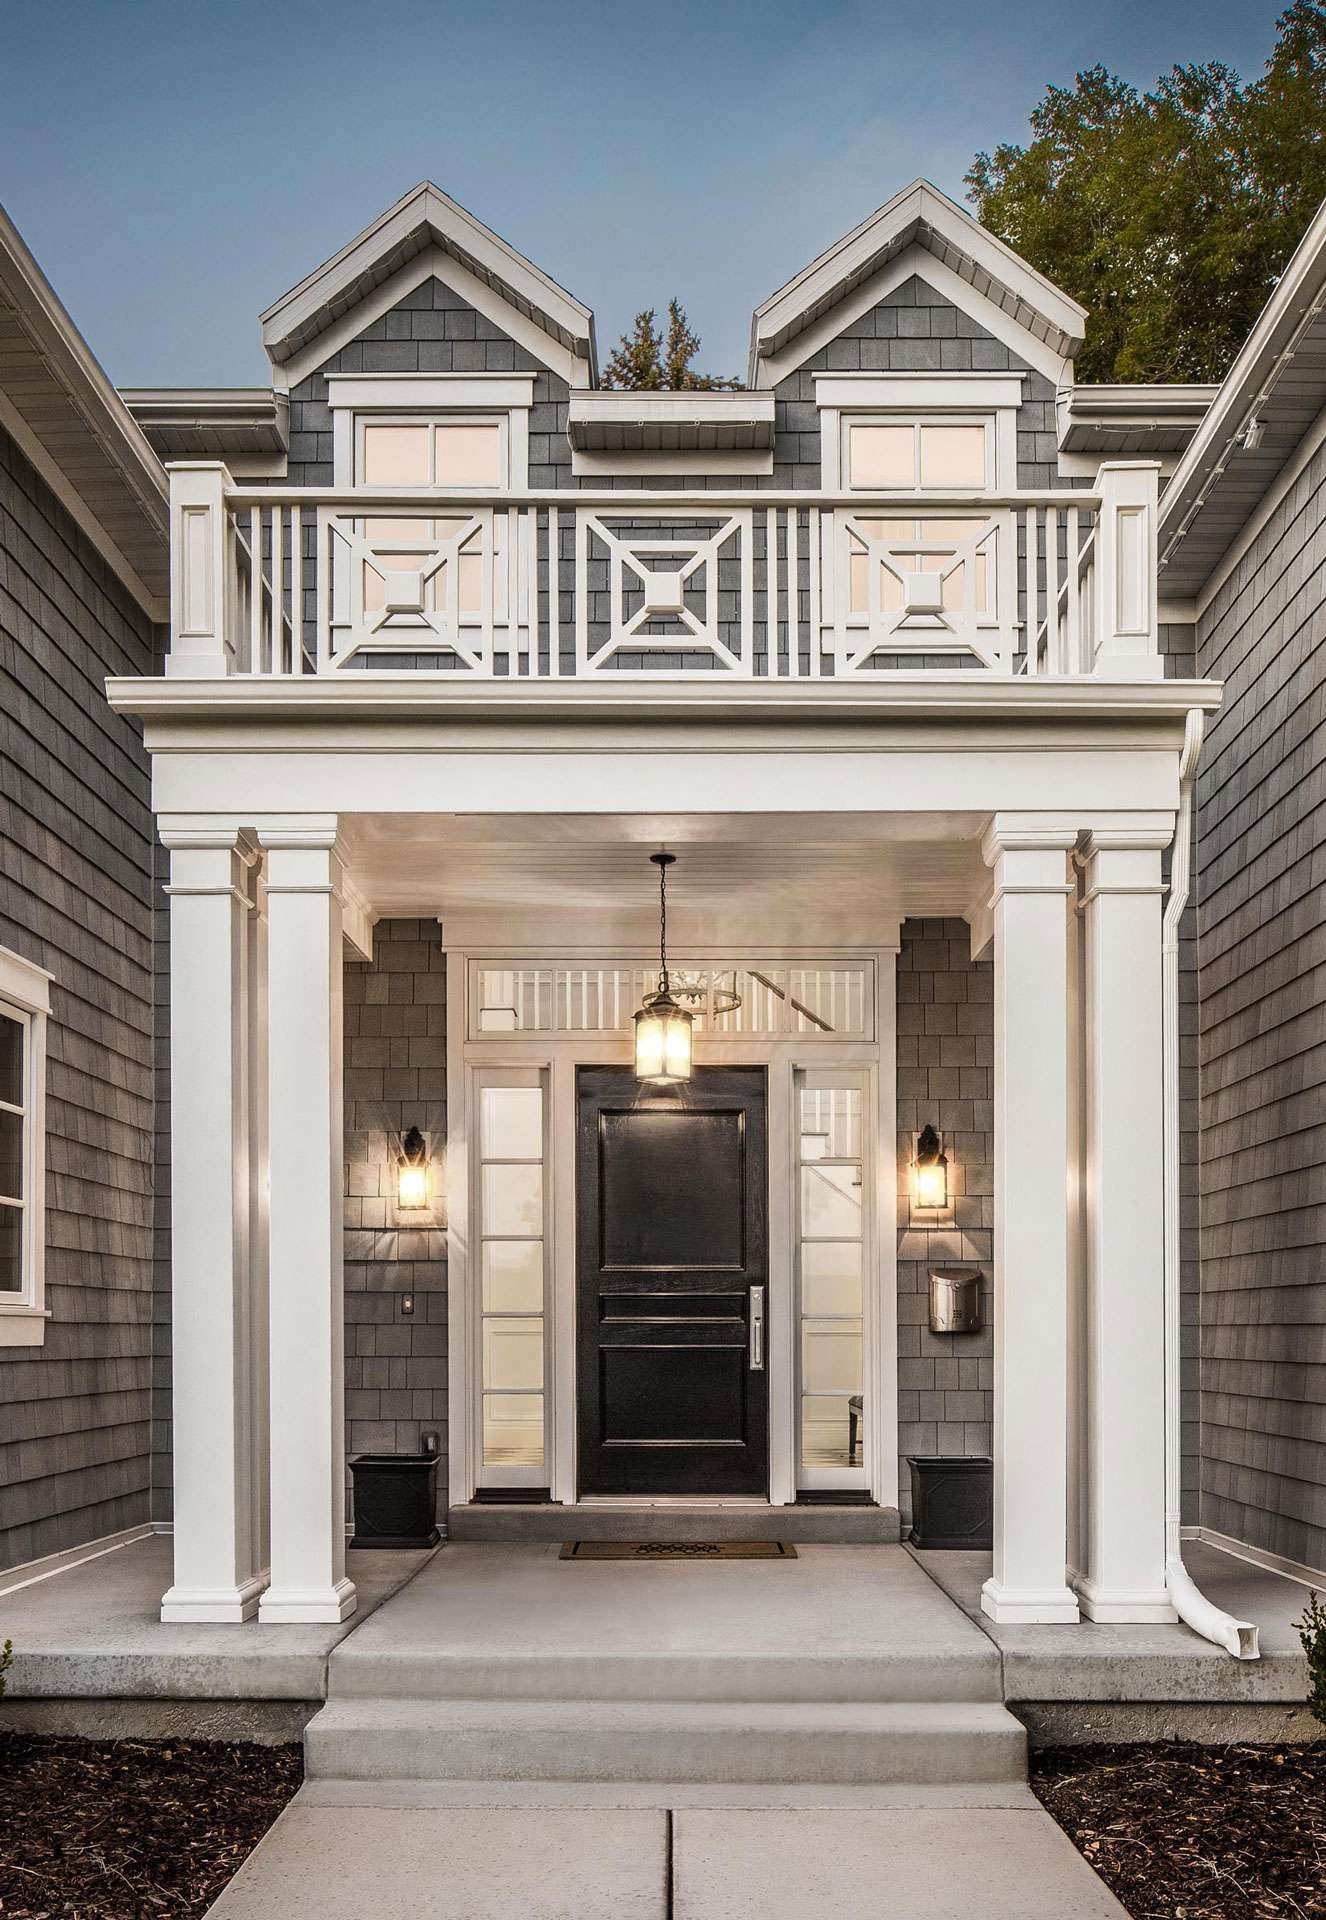 Front Steps Railing Home Design Ideas Pictures Remodel And Decor: Chippendale Railings And Bulked Up Porch Posts